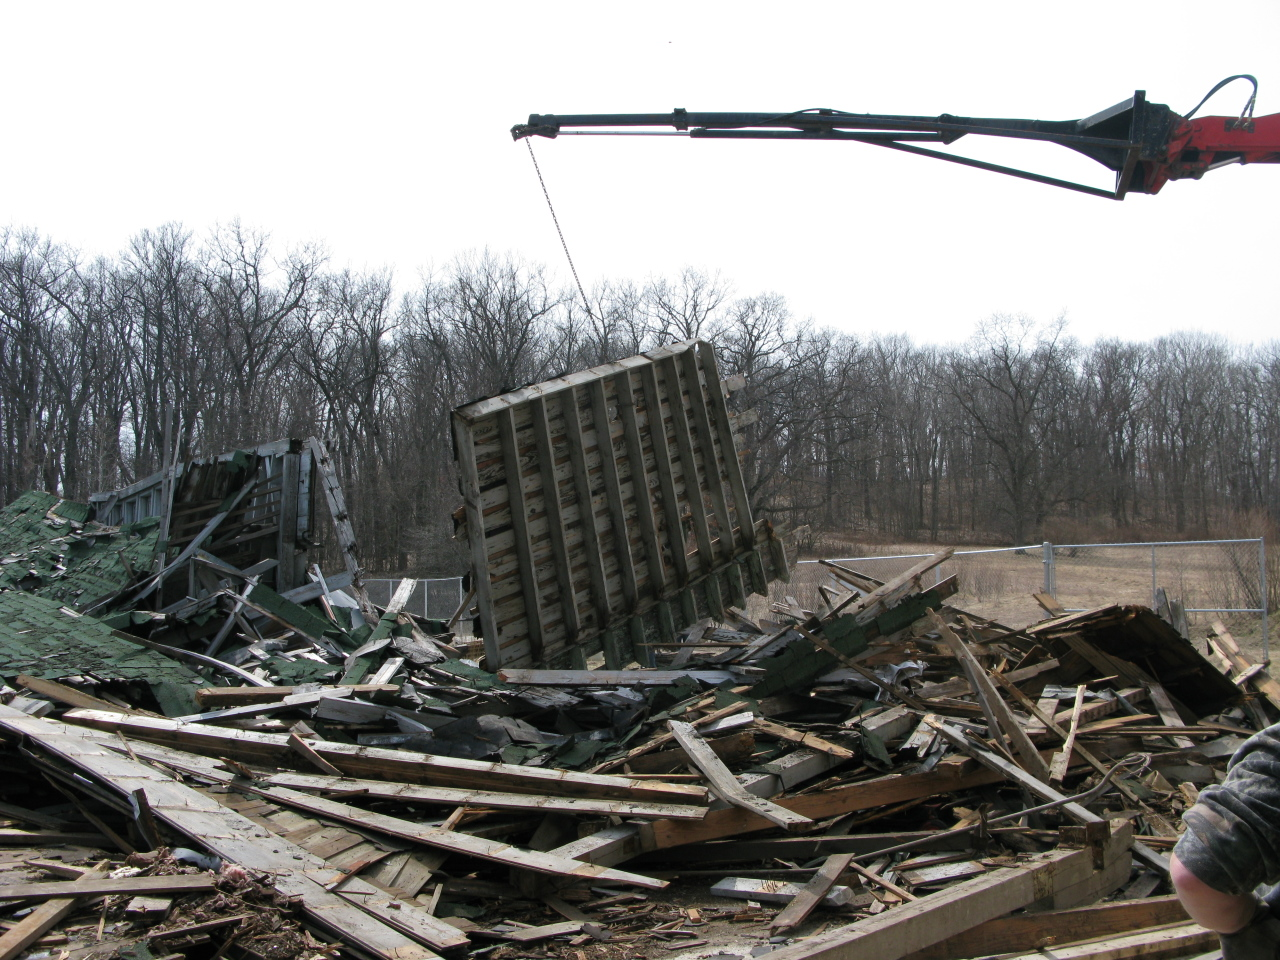 Heavy Lifter Dismantles the Edsel Ford Barn Debris